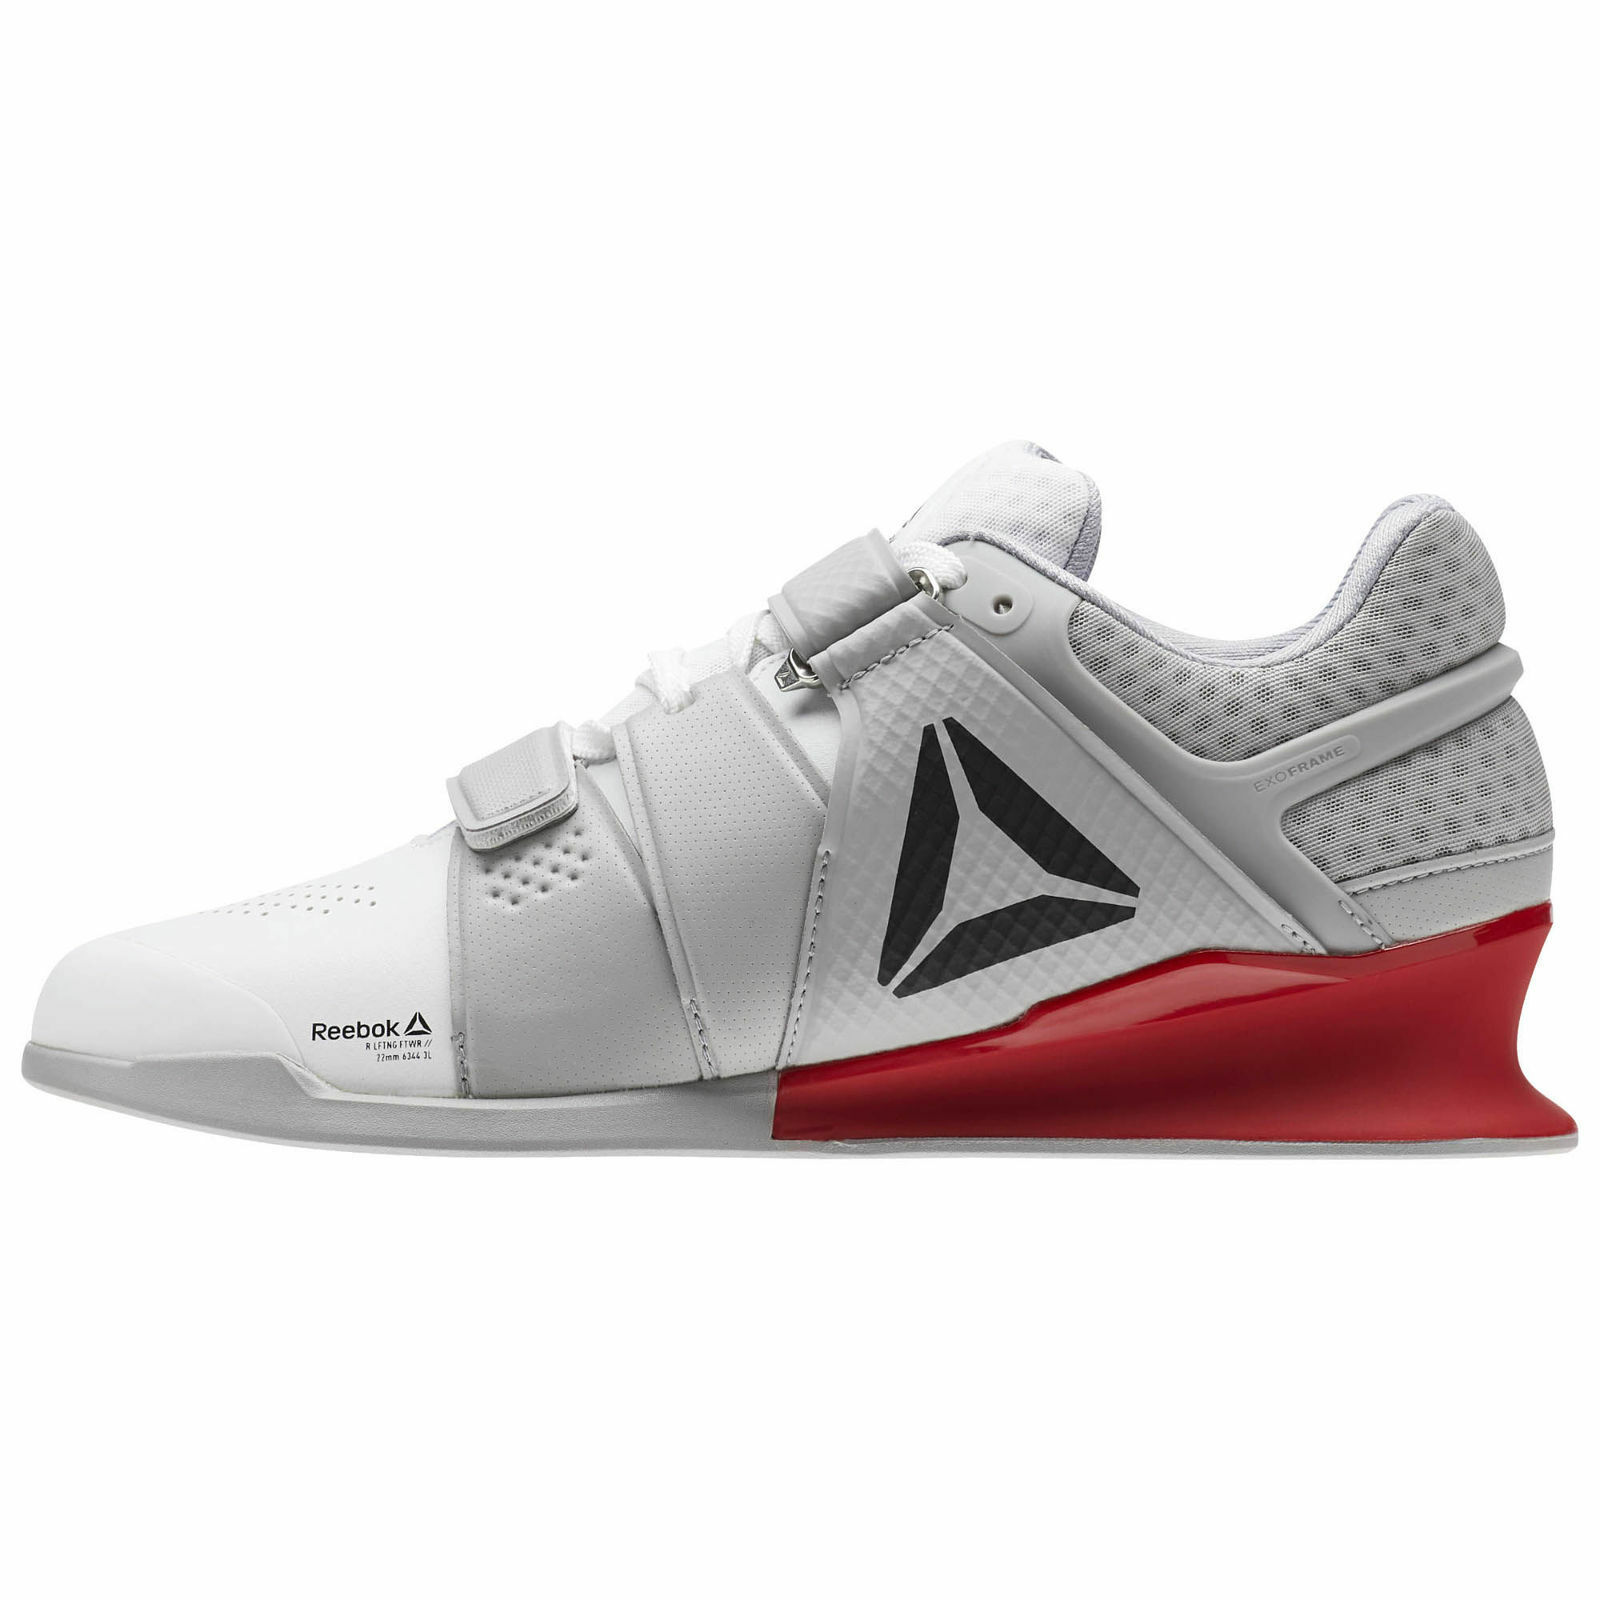 Reebok Legacy Lifter [CN1000] Men Weightlifting Training shoes White Red